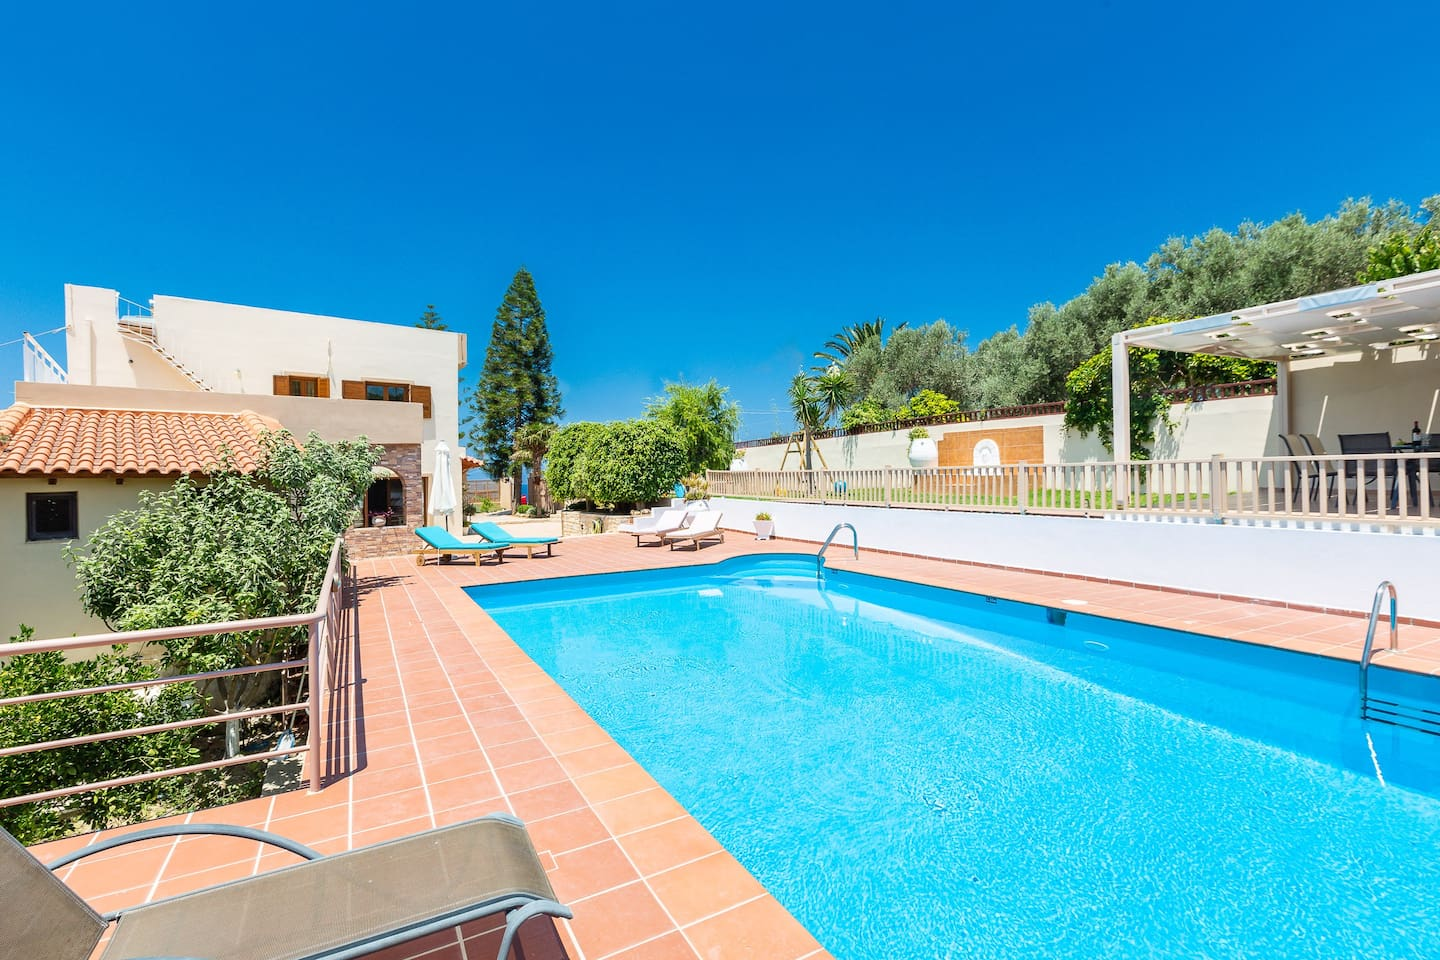 Sit by the pool and enjoy the Greek sun and feel the light cool breeze from the Cretan sea!